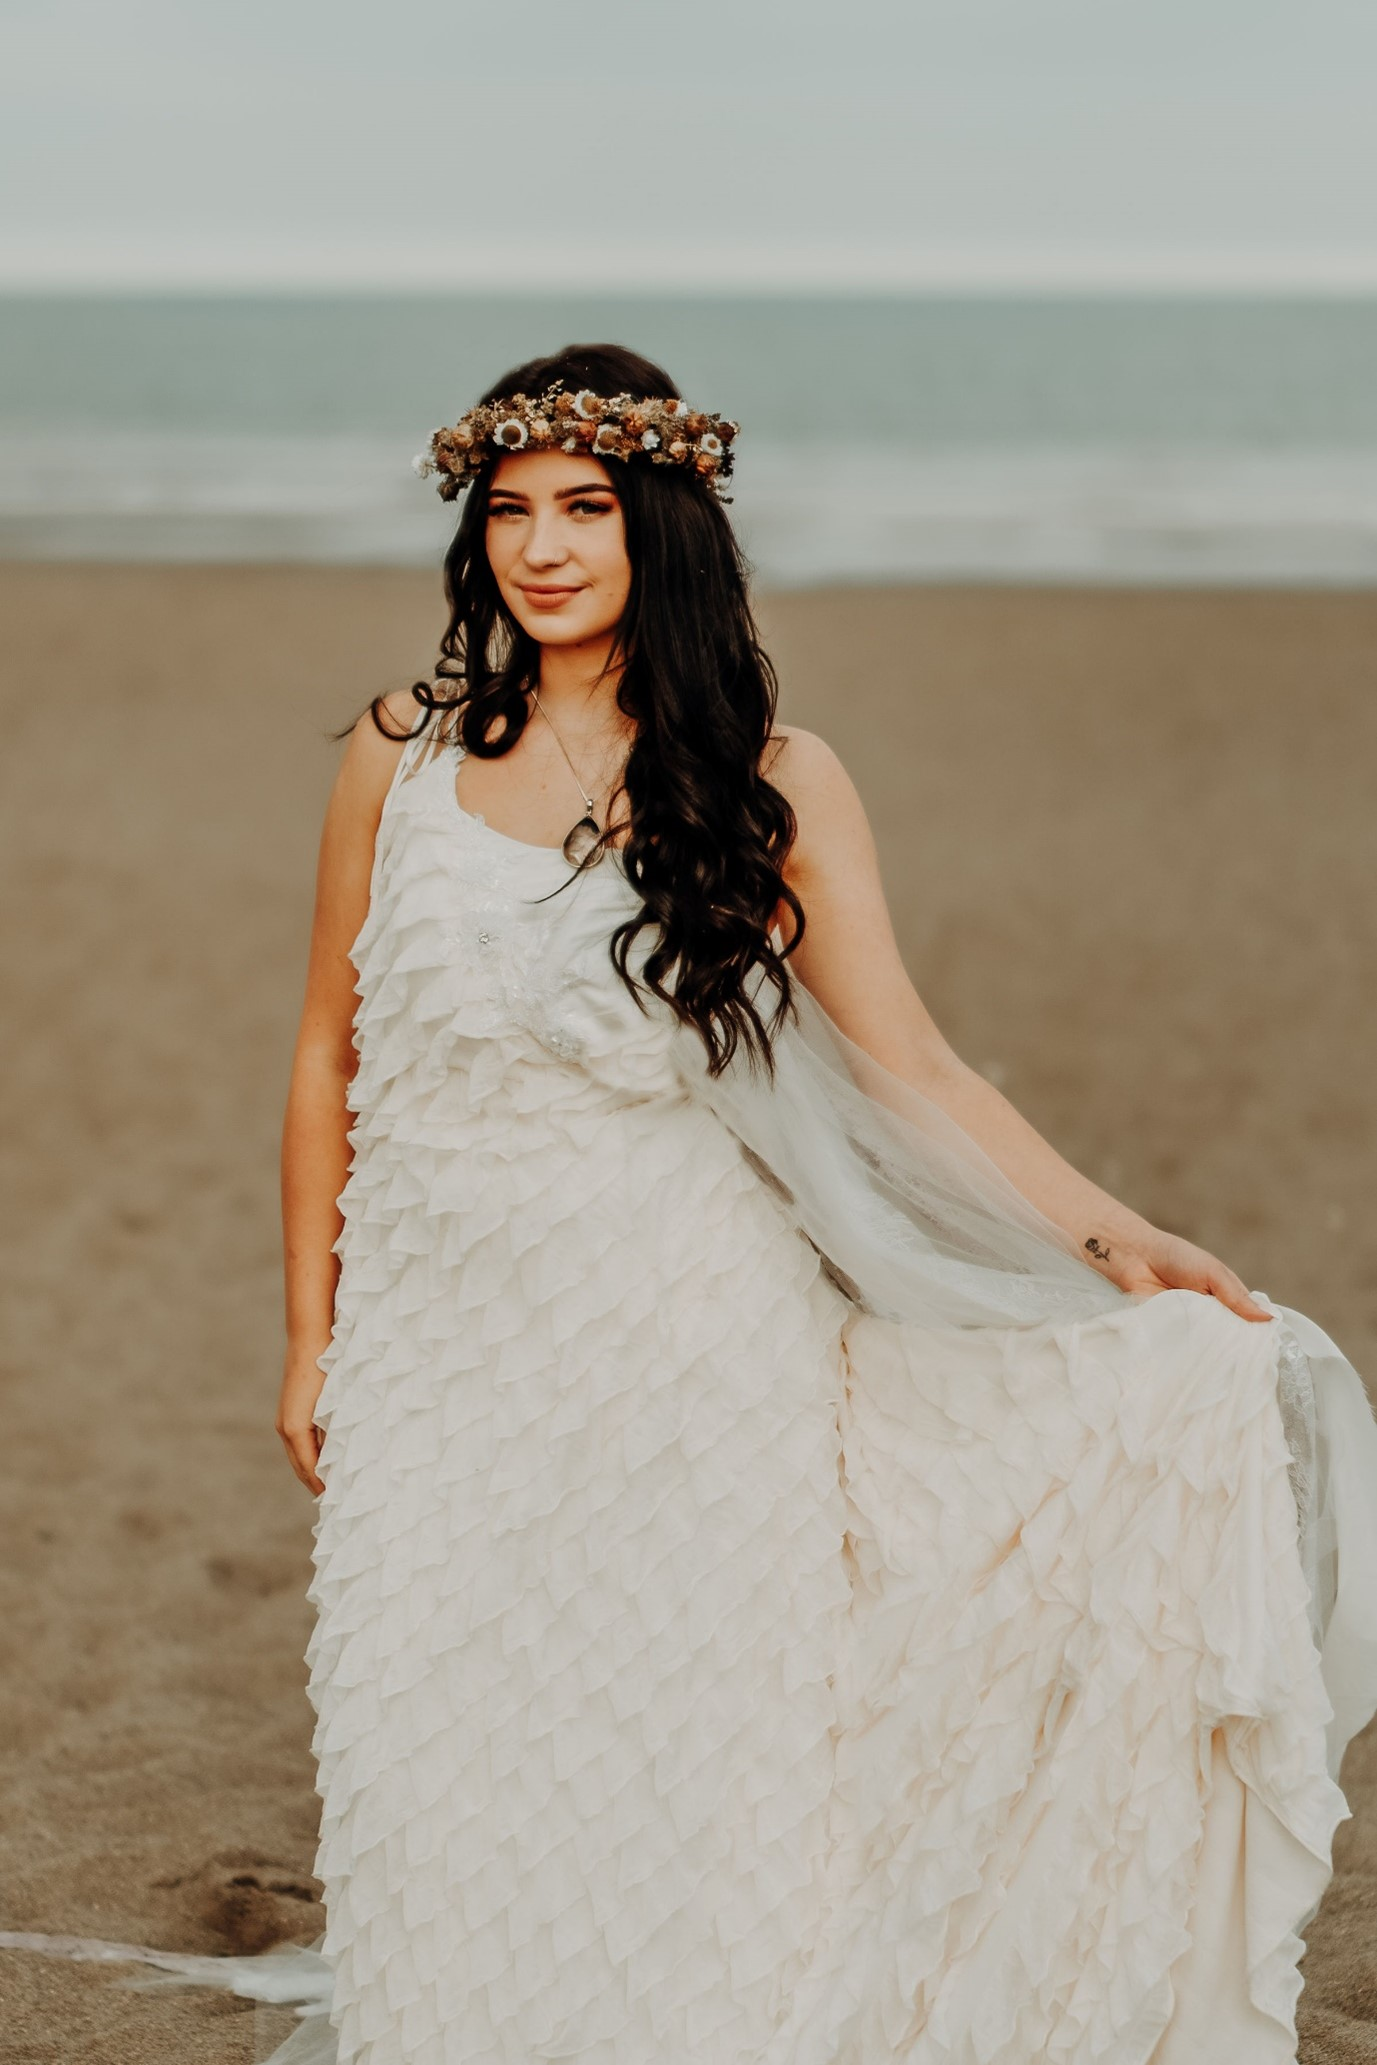 beach elopement - beach wedding - eco friendly wedding -tempest themed wedding - bohemian wedding dress- autumnal bridal flower crown